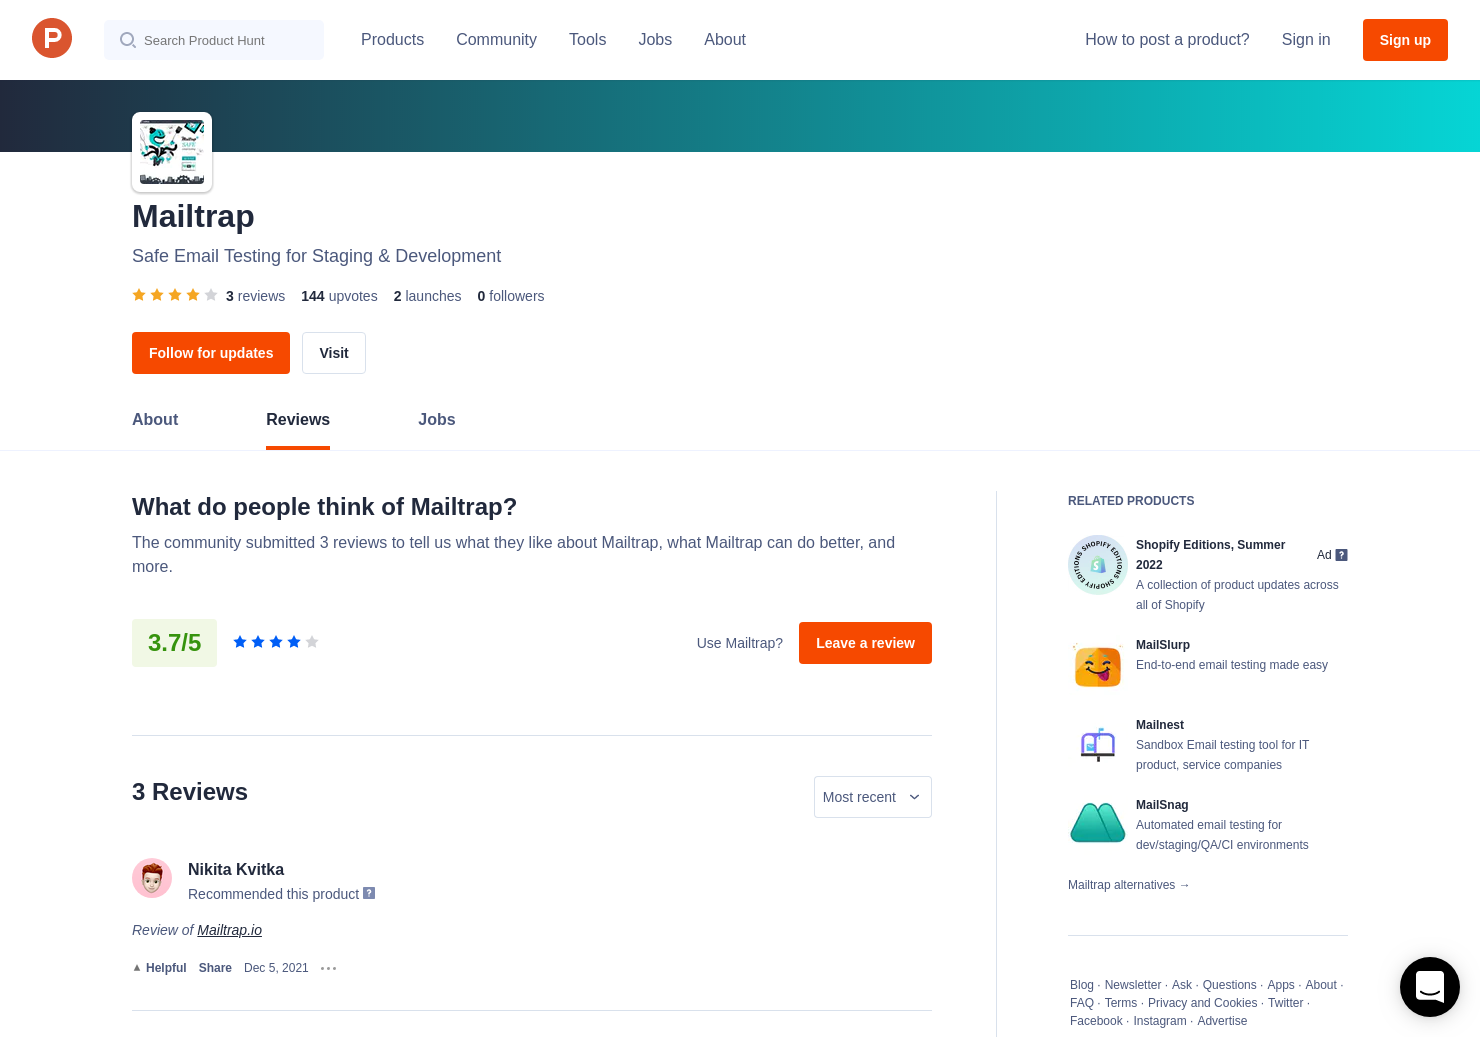 1 Mailtrap io Reviews - Pros, Cons and Rating | Product Hunt